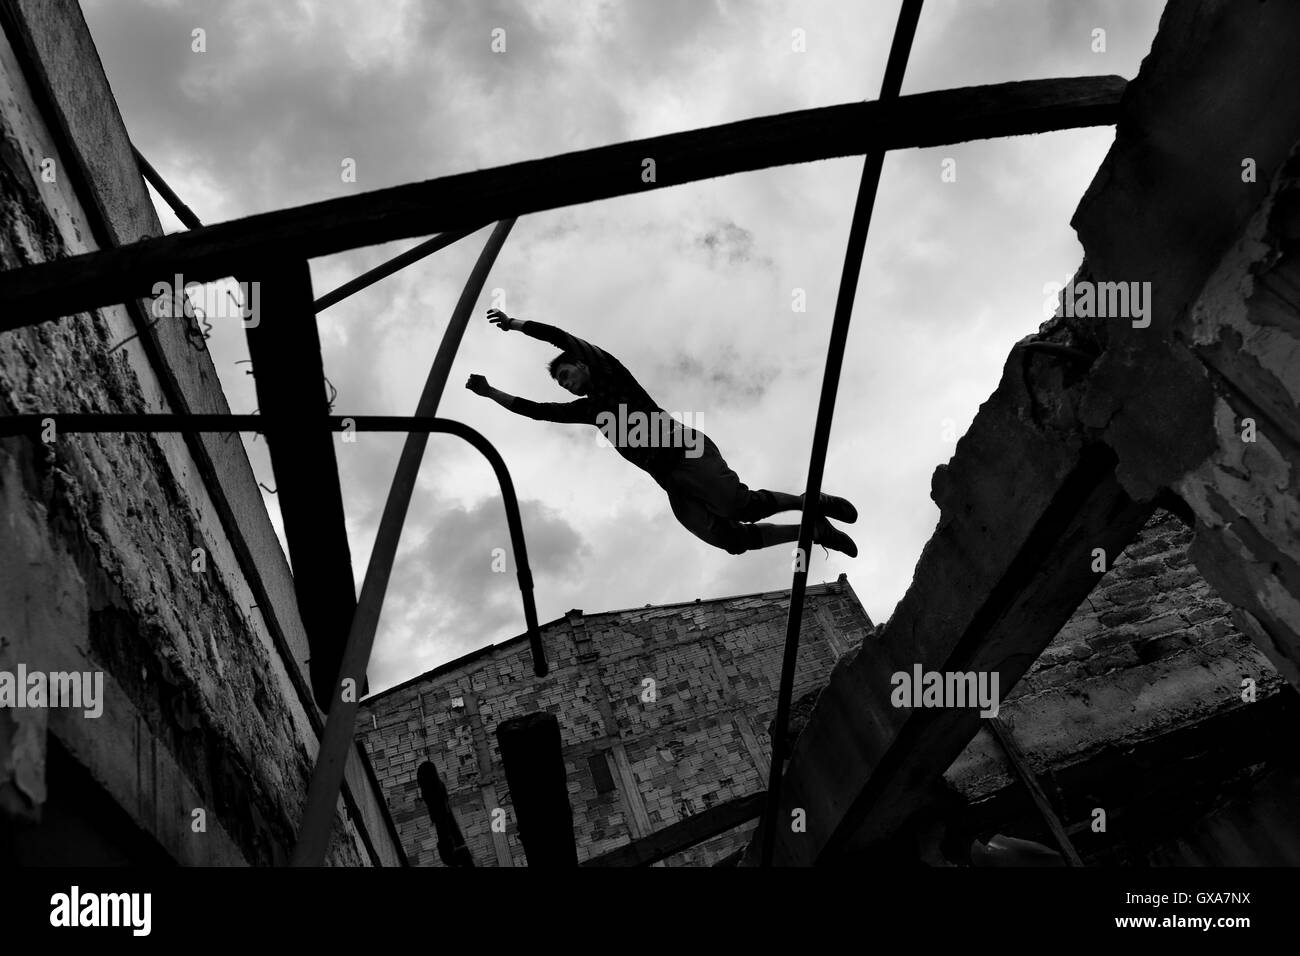 A Colombian parkour runner jumps over a gap inside an